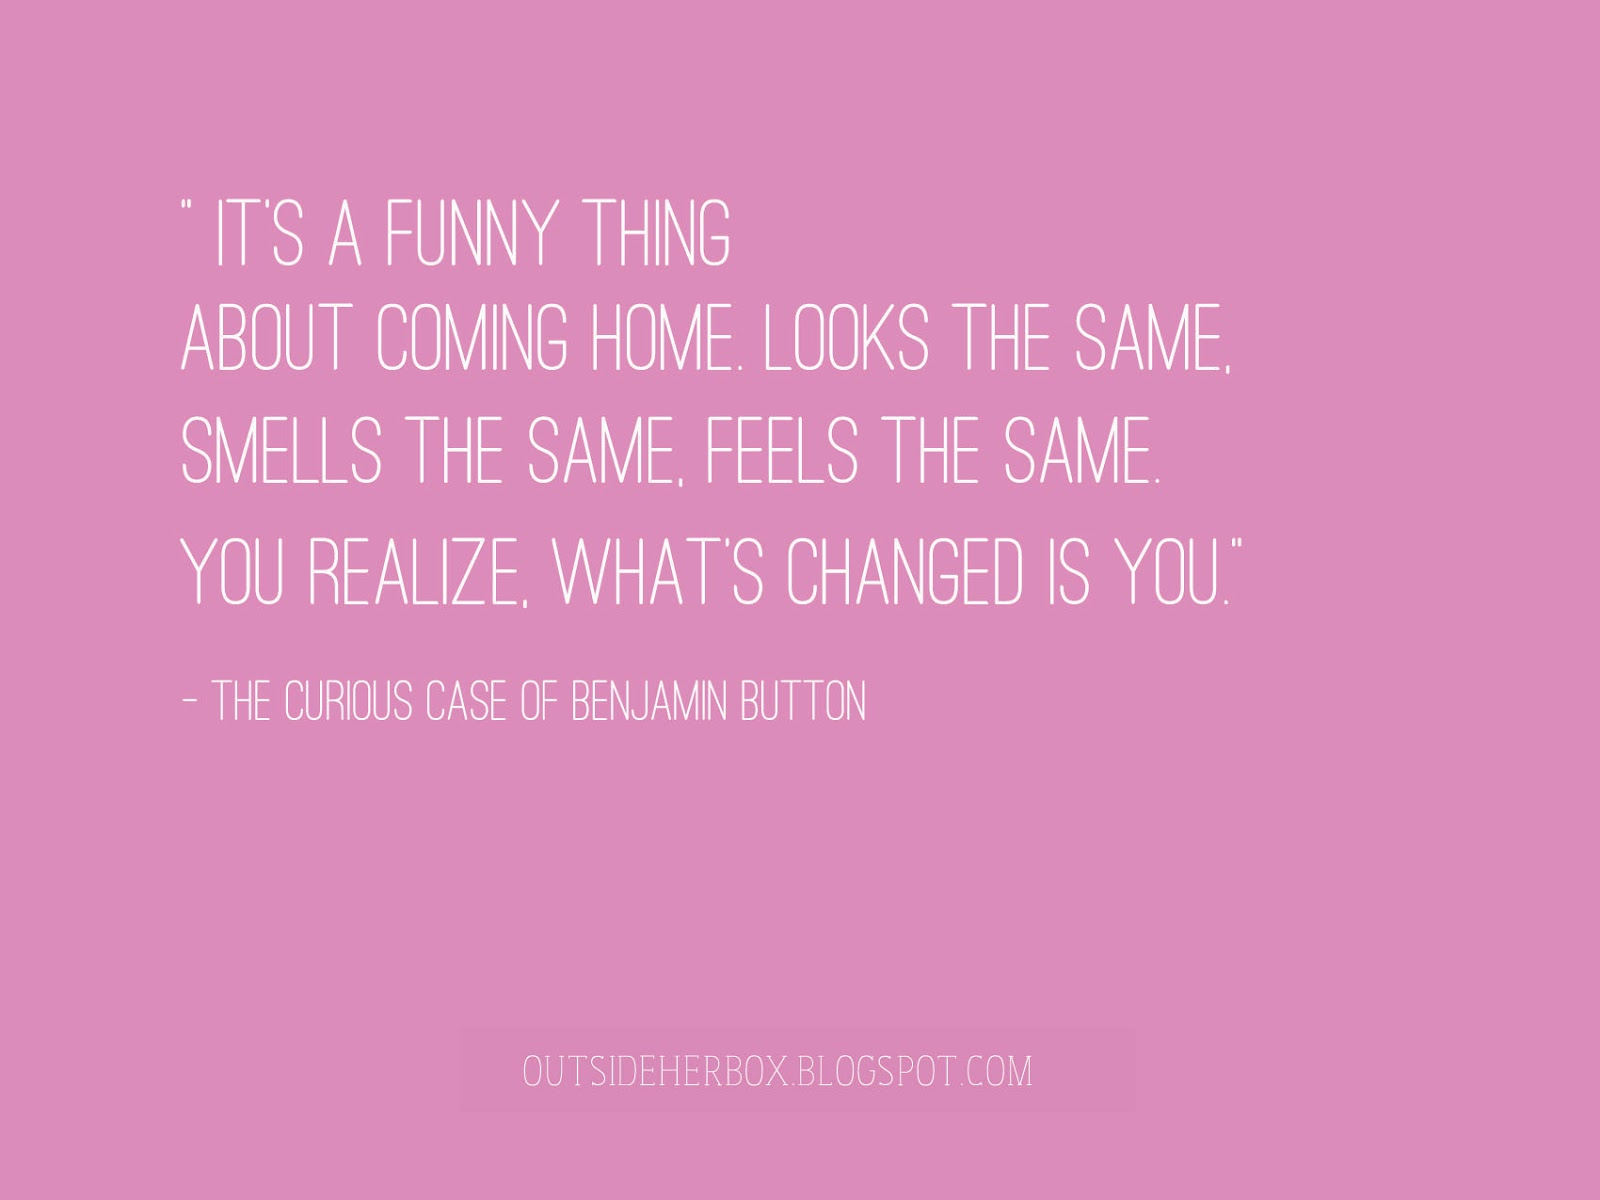 Coming Home Quotes Quotes The Curious Case Of Benjamin Button  Koshe